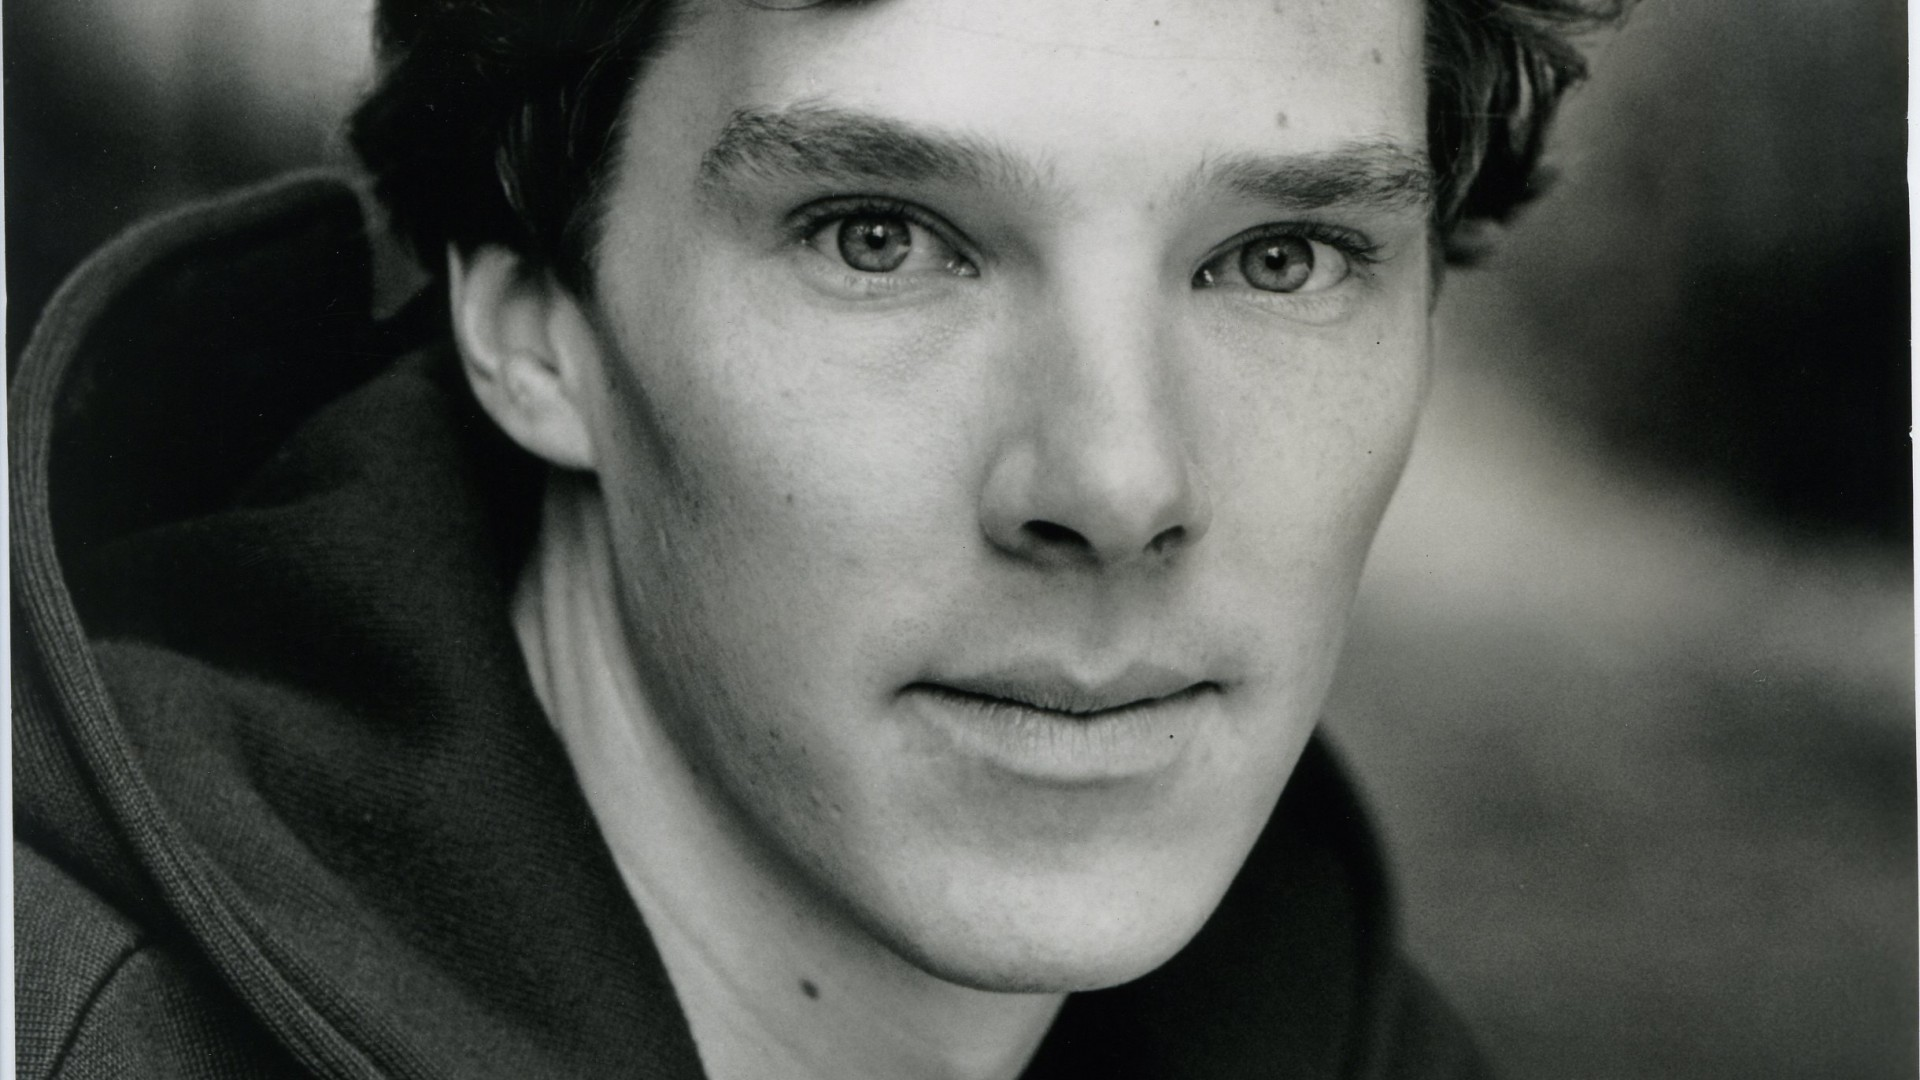 Benedict Cumberbatch Wallpapers High Resolution and Quality Download Benedict Cumberbatch